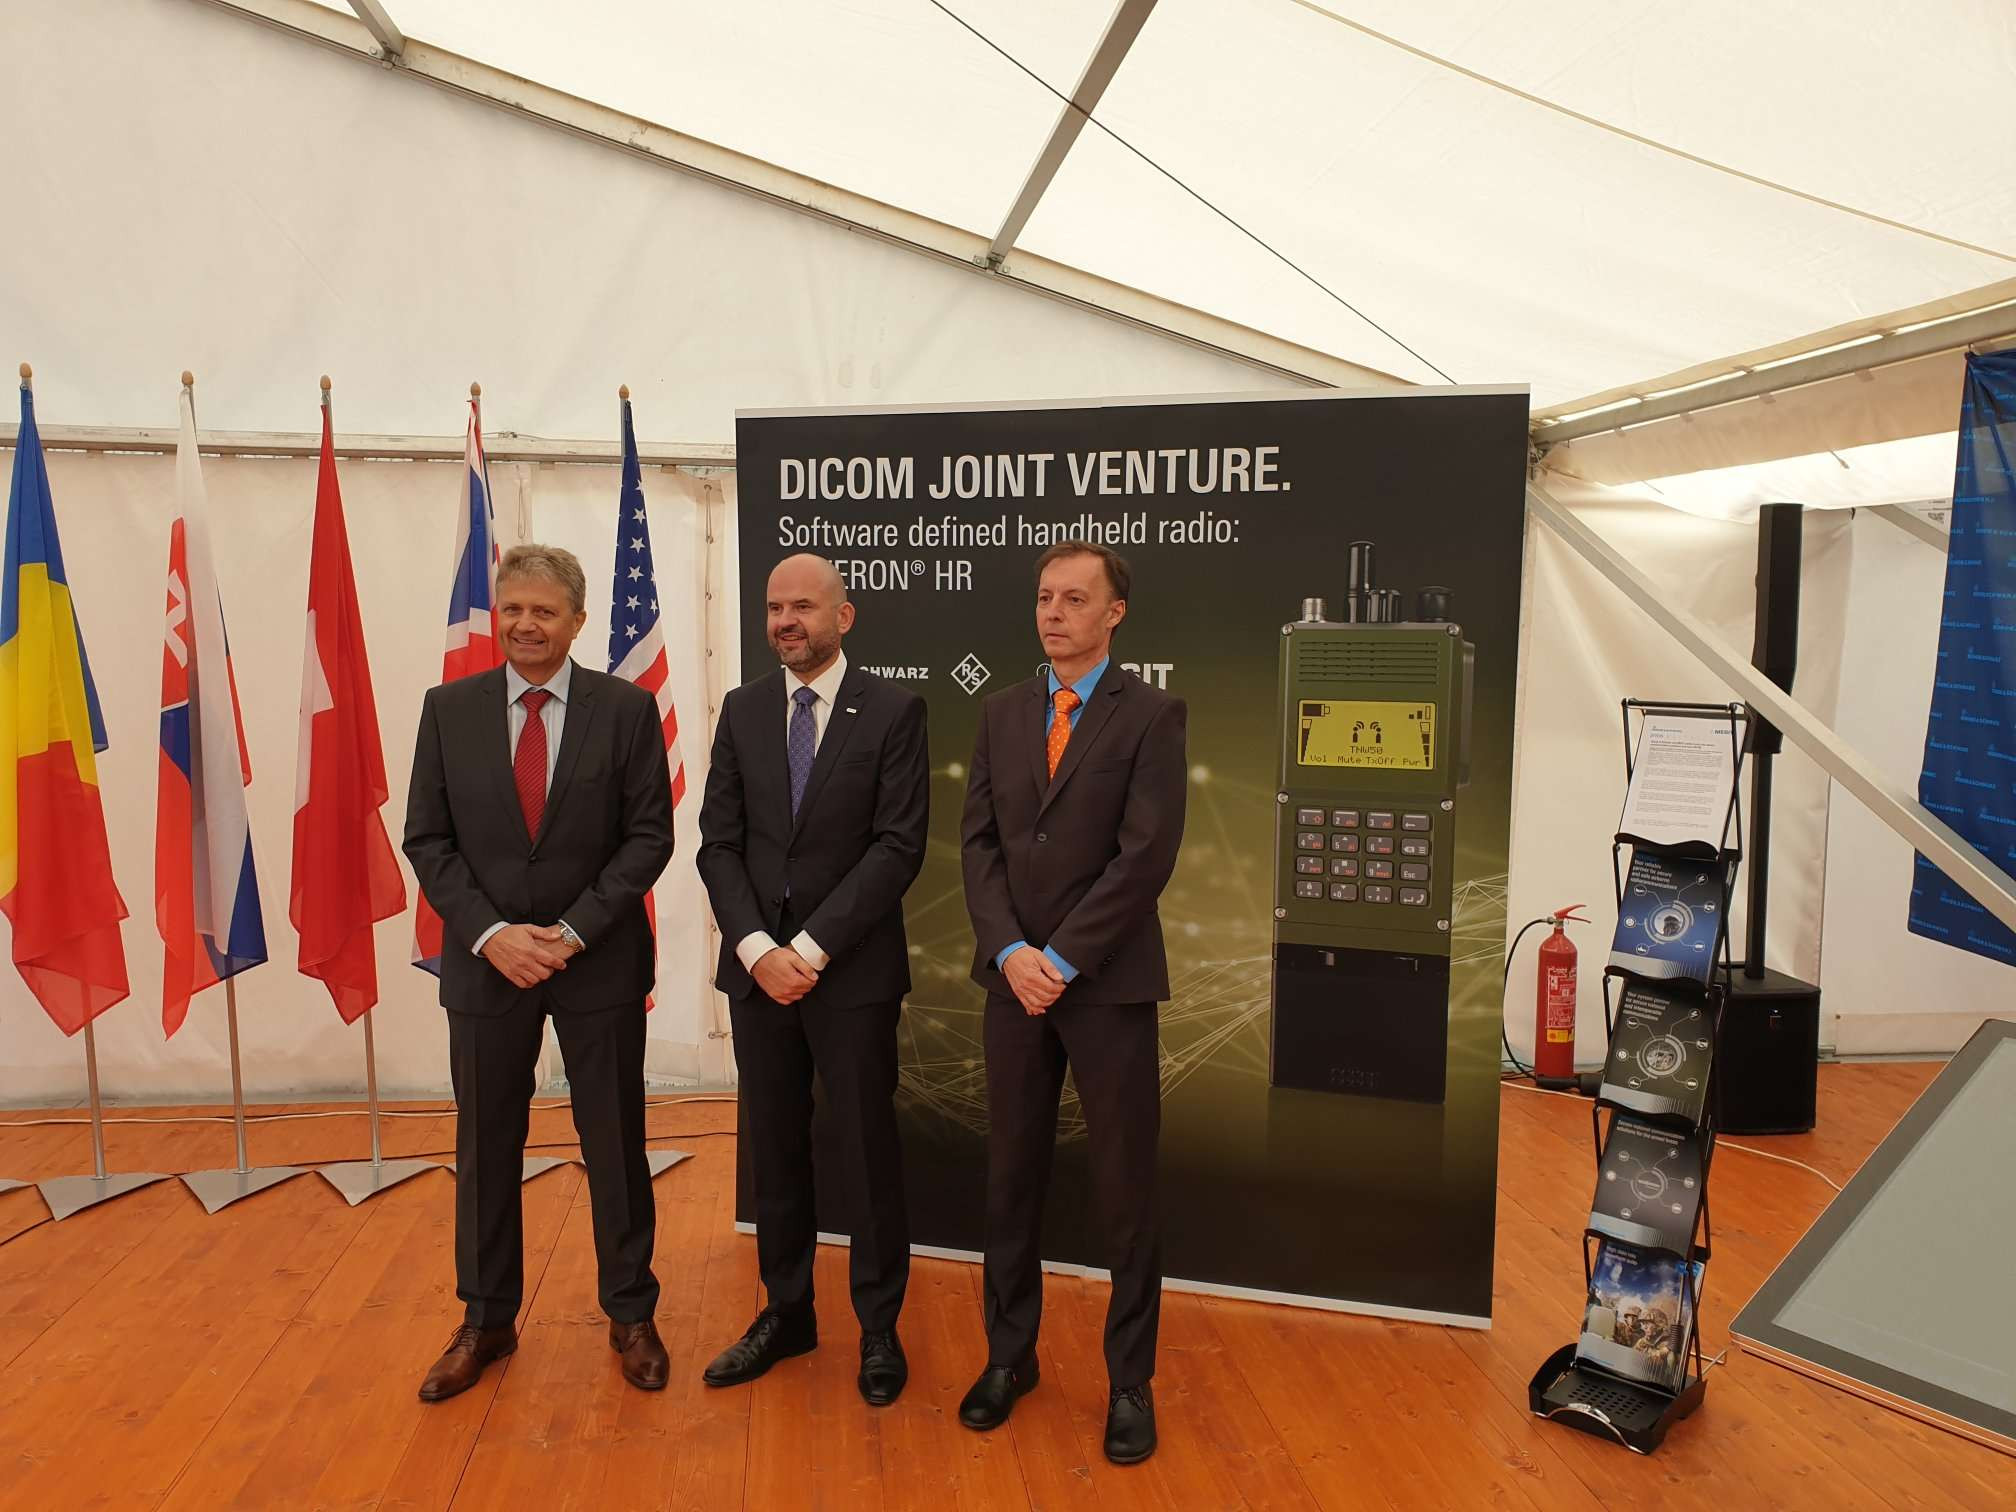 NATO Day Ostrava, Czech Republic DICOM Joint venture Presentation Image 1